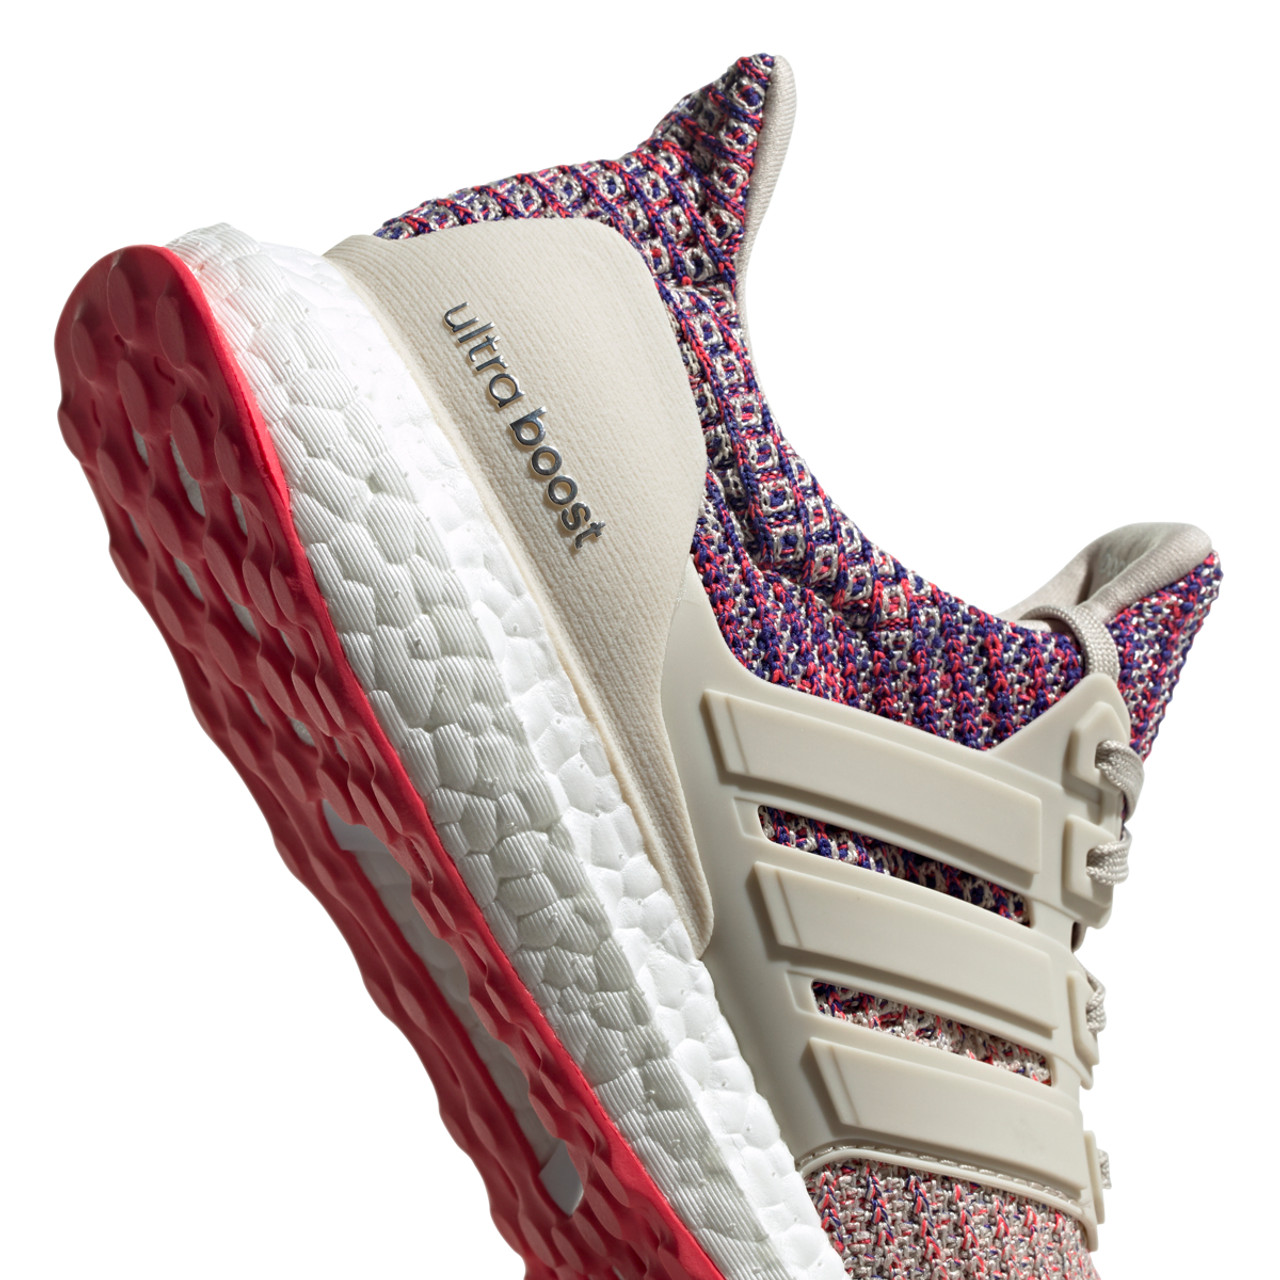 1d6a6de45653f Adidas UltraBoost Women s Running Sneakers F36122 - Multi Colored ...